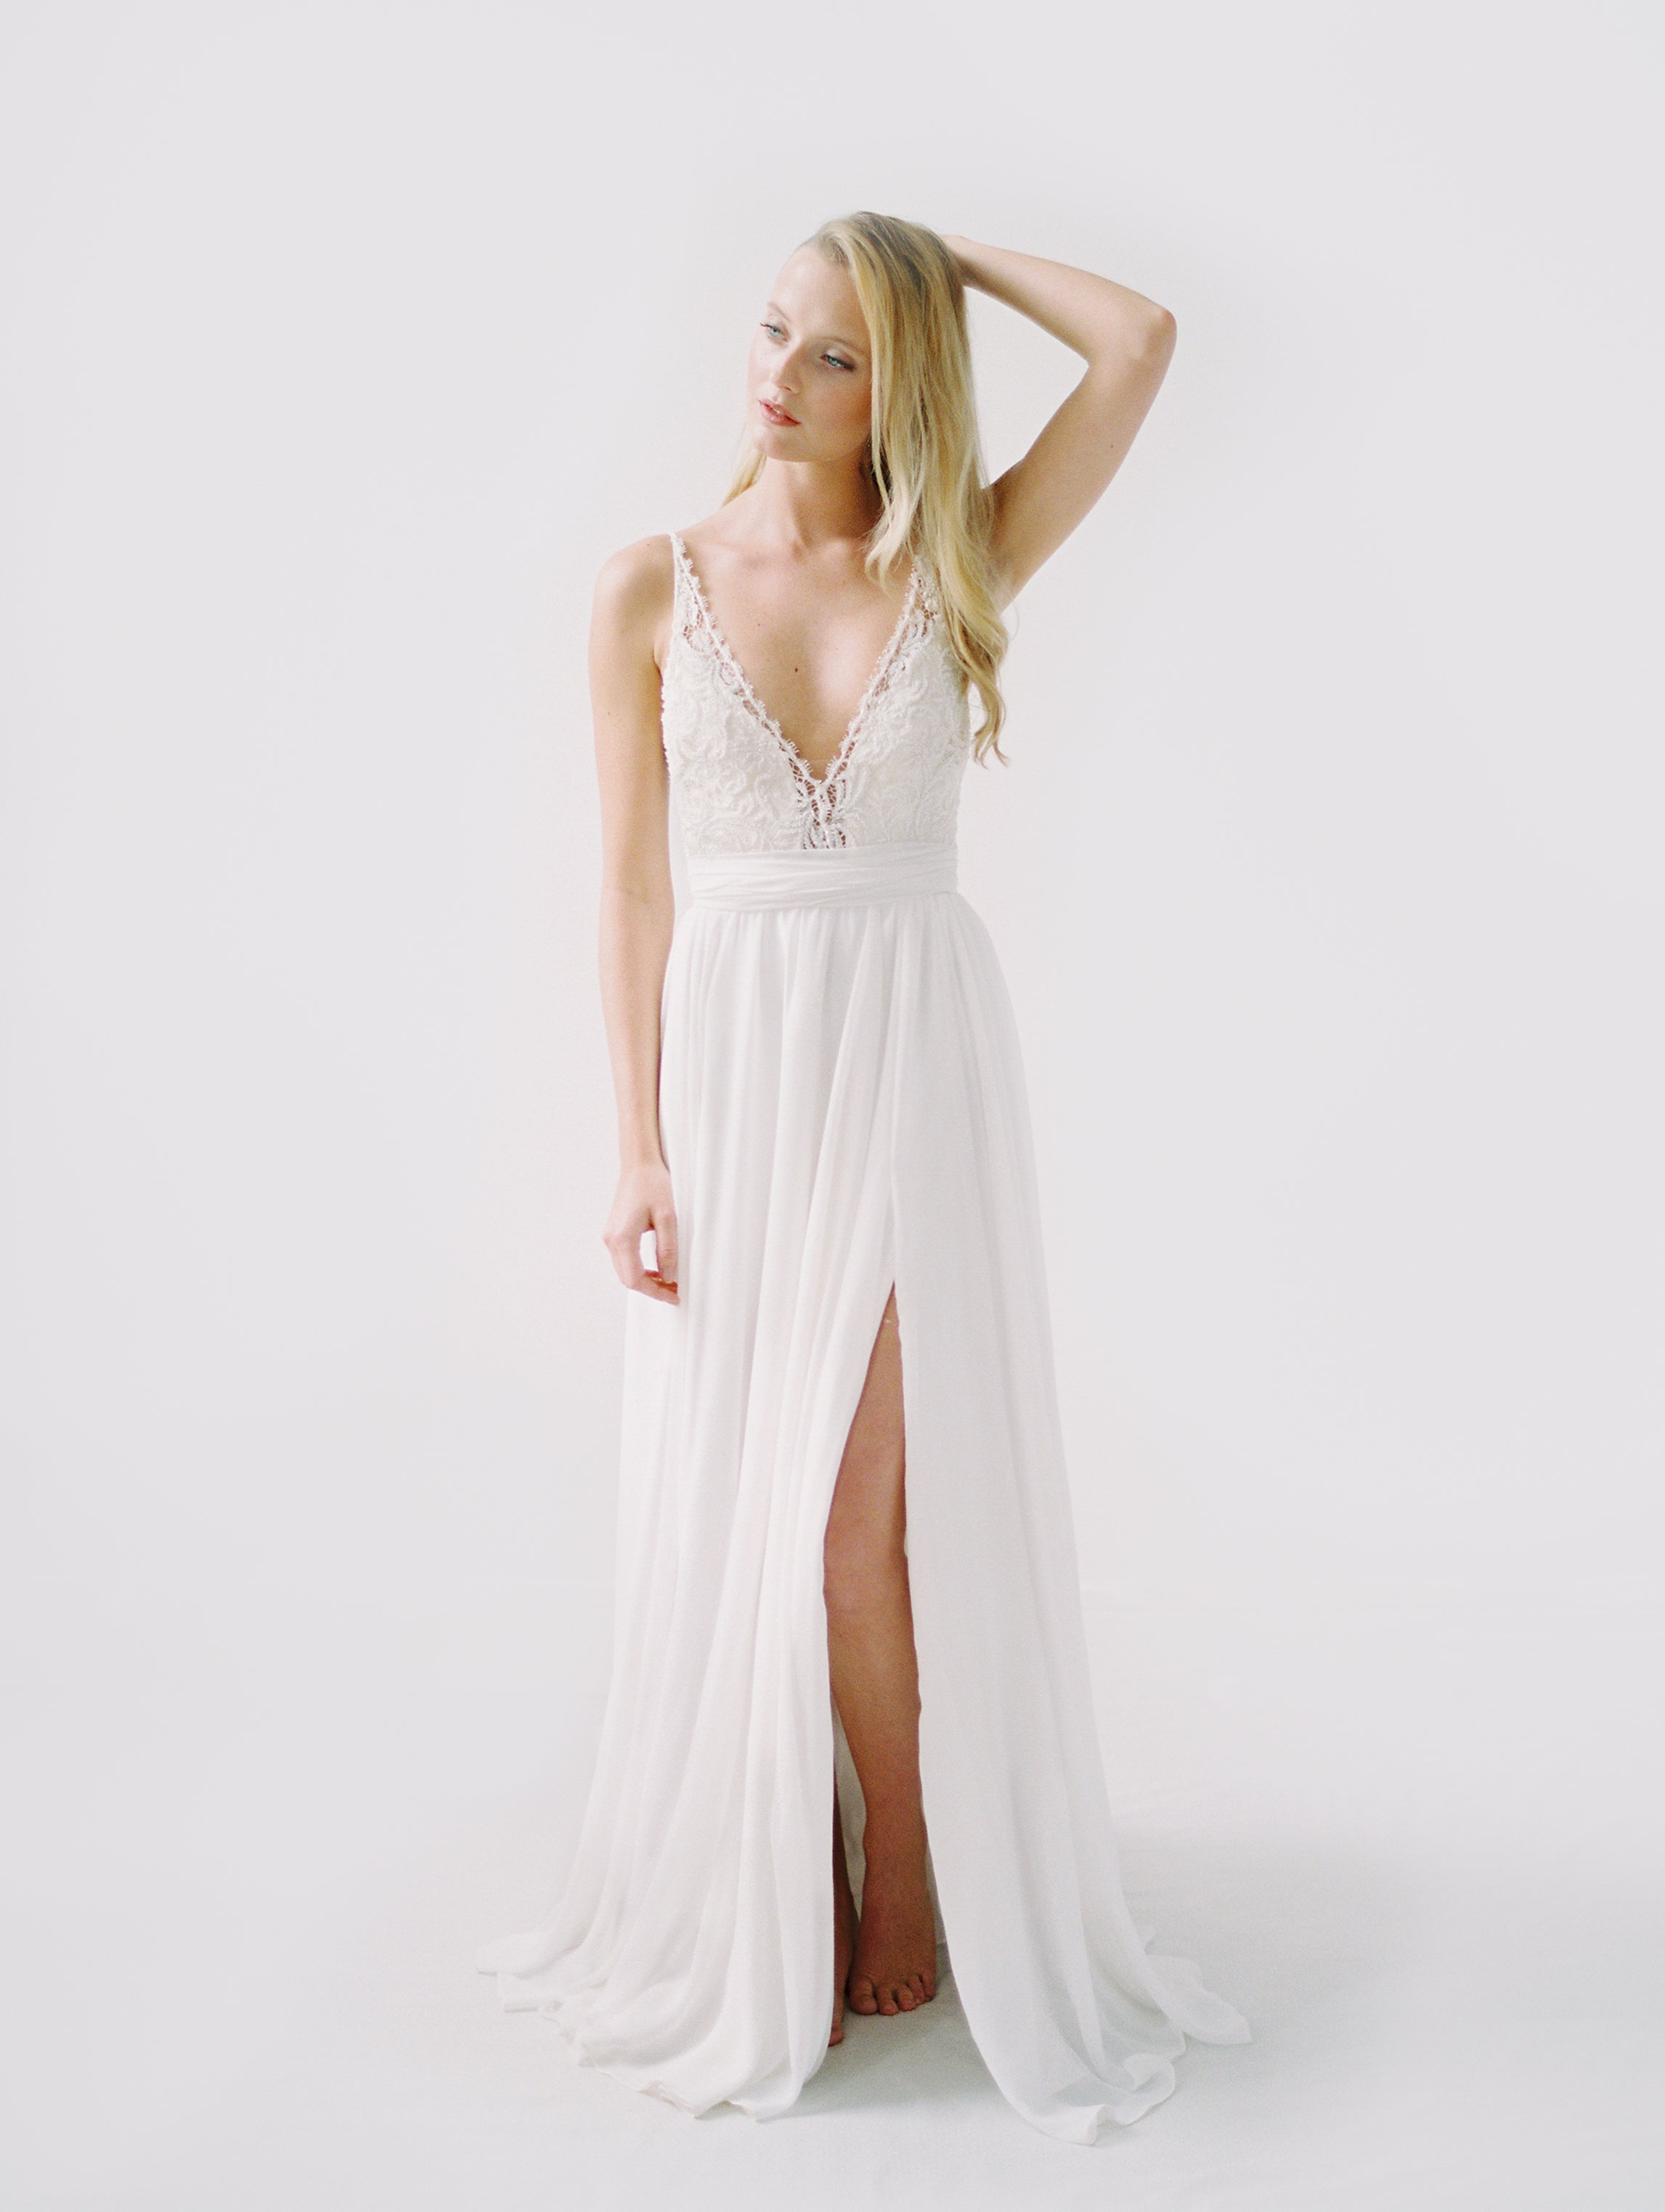 Lightweight beach wedding dress with a train and side slit, and a beaded low back top